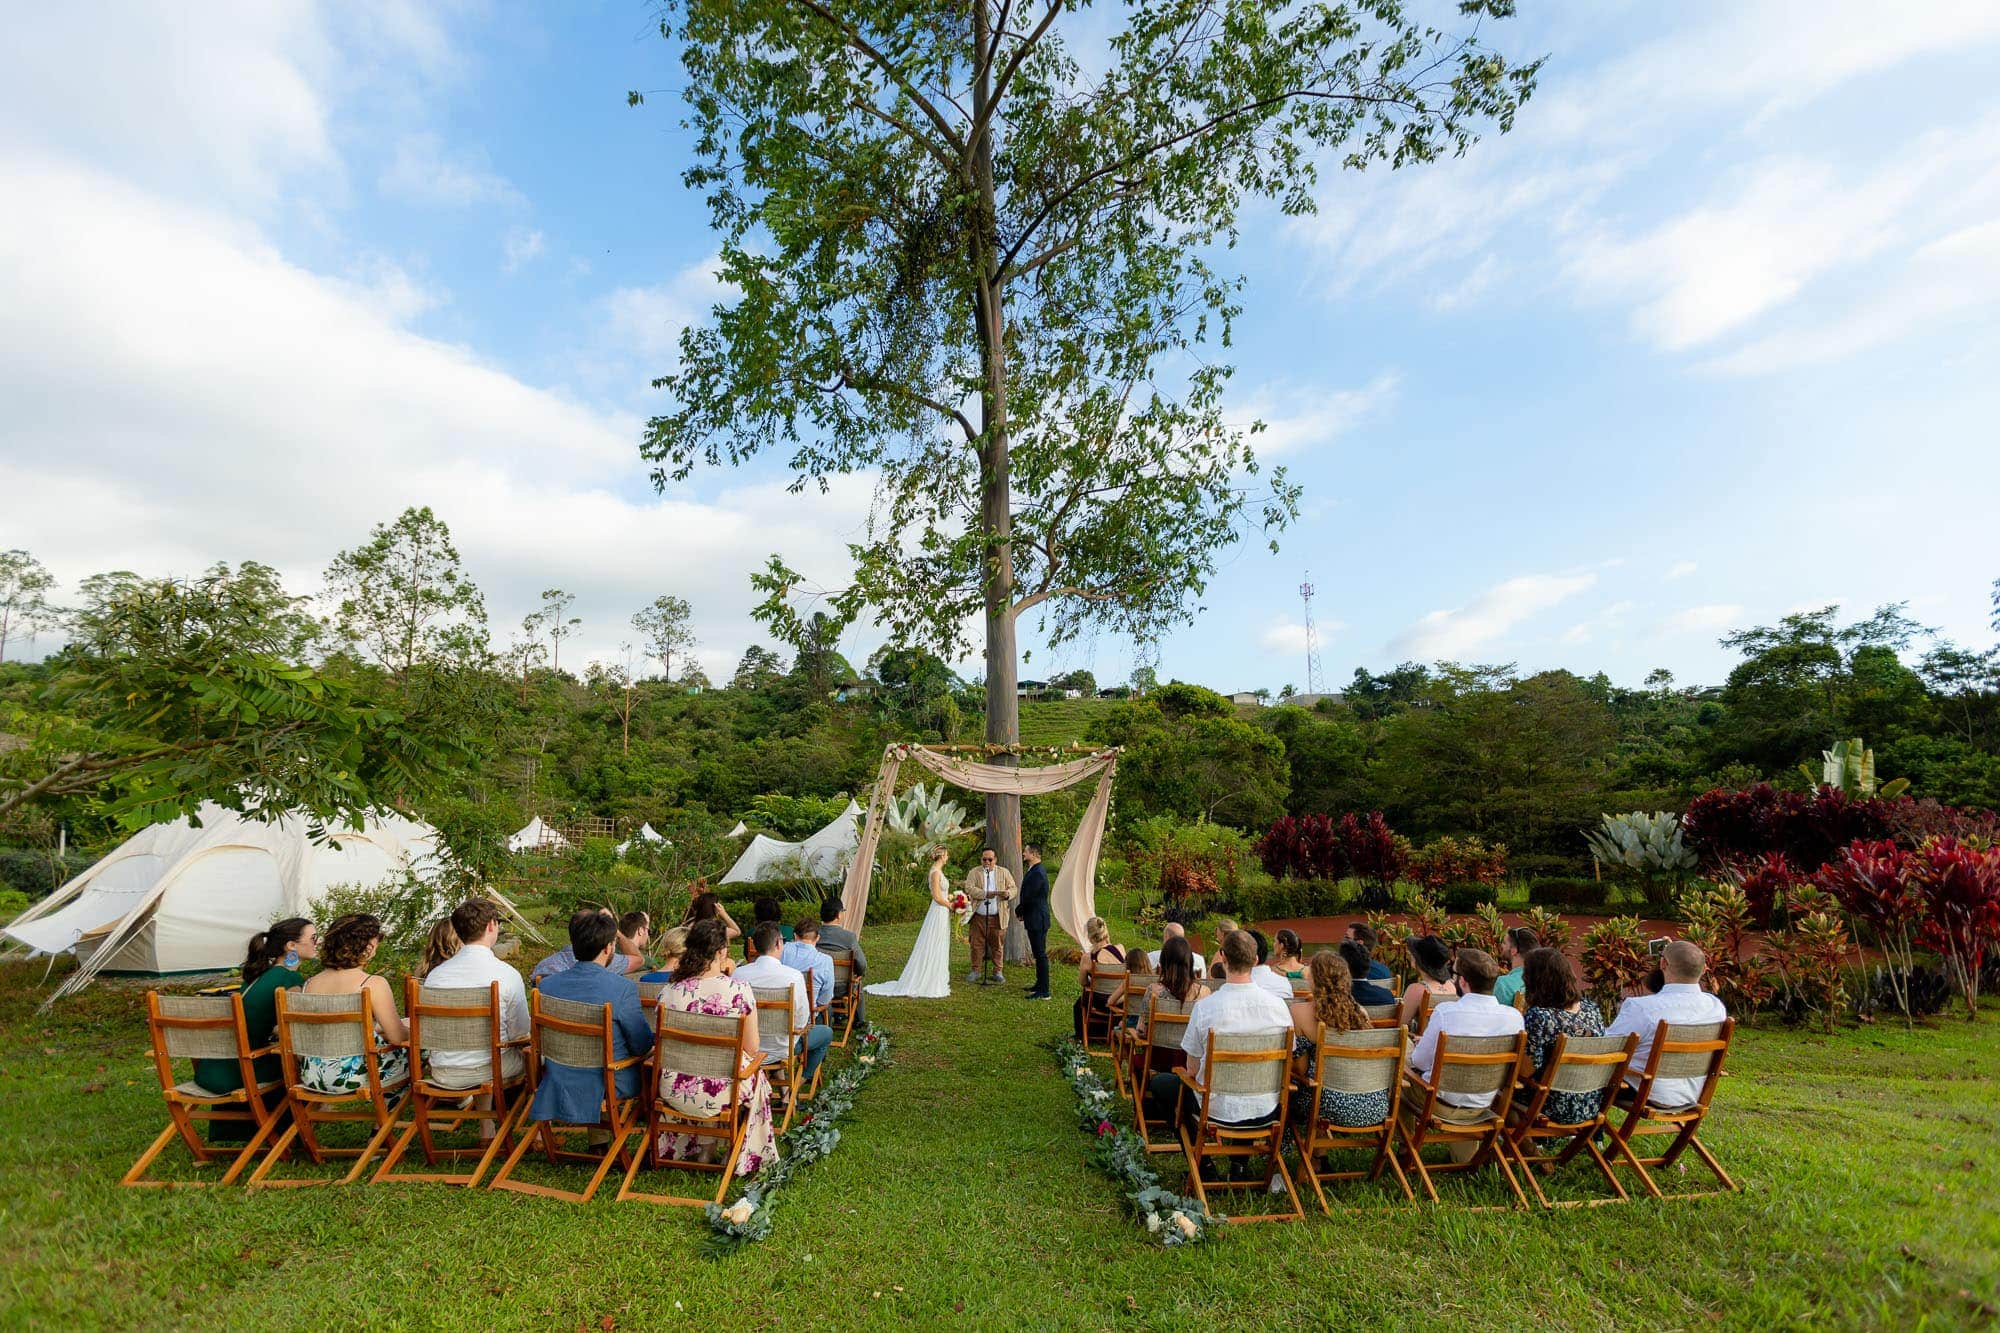 The ceremony of a glamping wedding